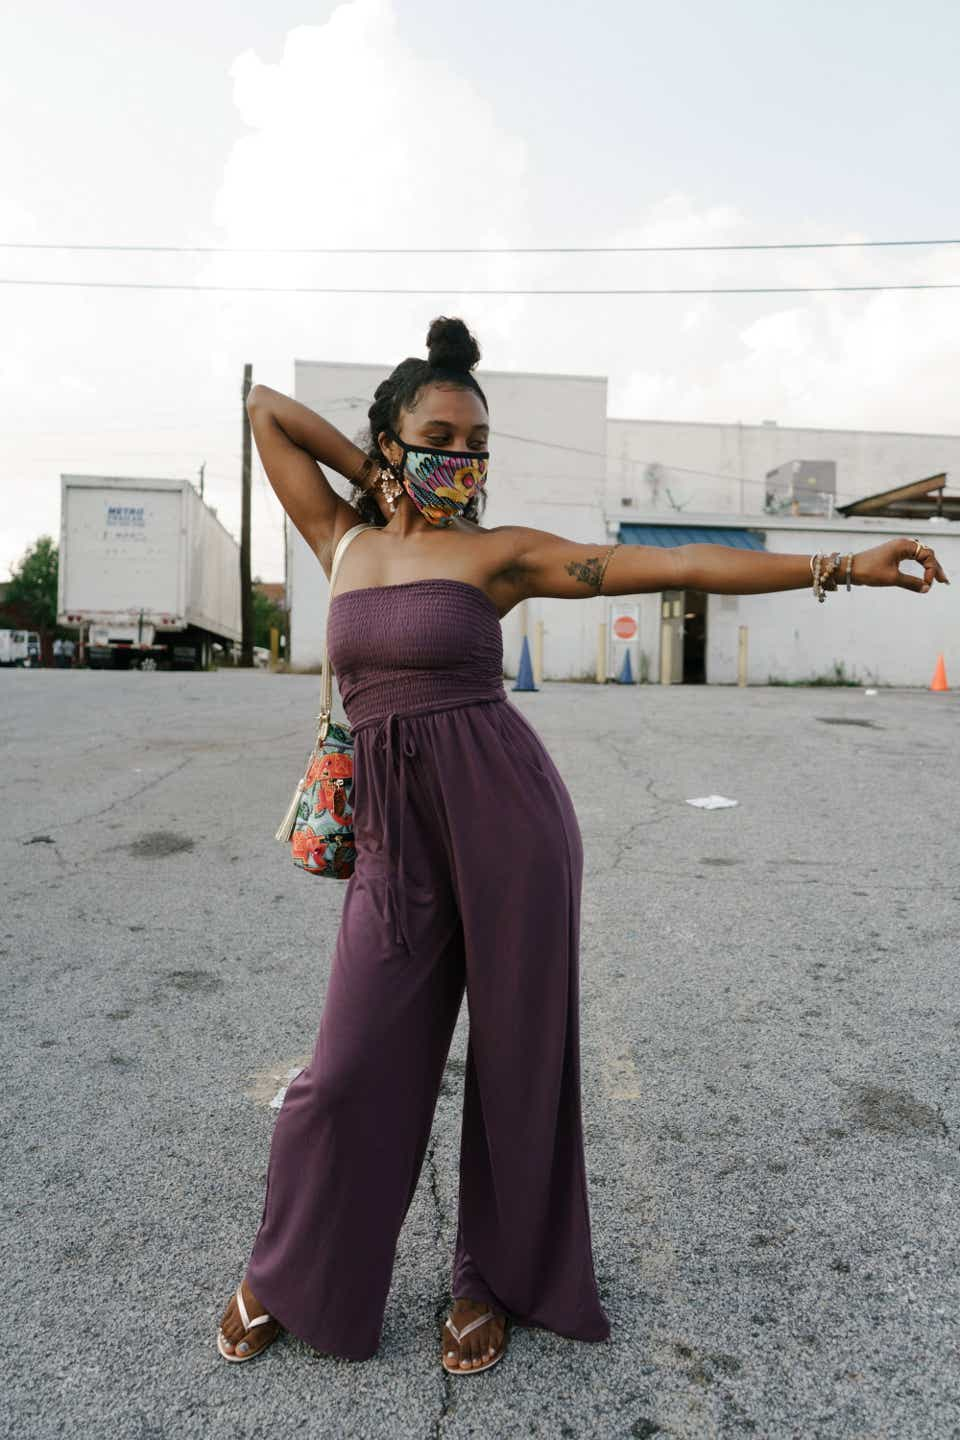 Jazmin is posing with one arm sretched out while wearing a colorful, patterned face mask and a dark purple, strapless jumpsuit. She is carrying an orange drawstring purse and wearing simple flip flops.